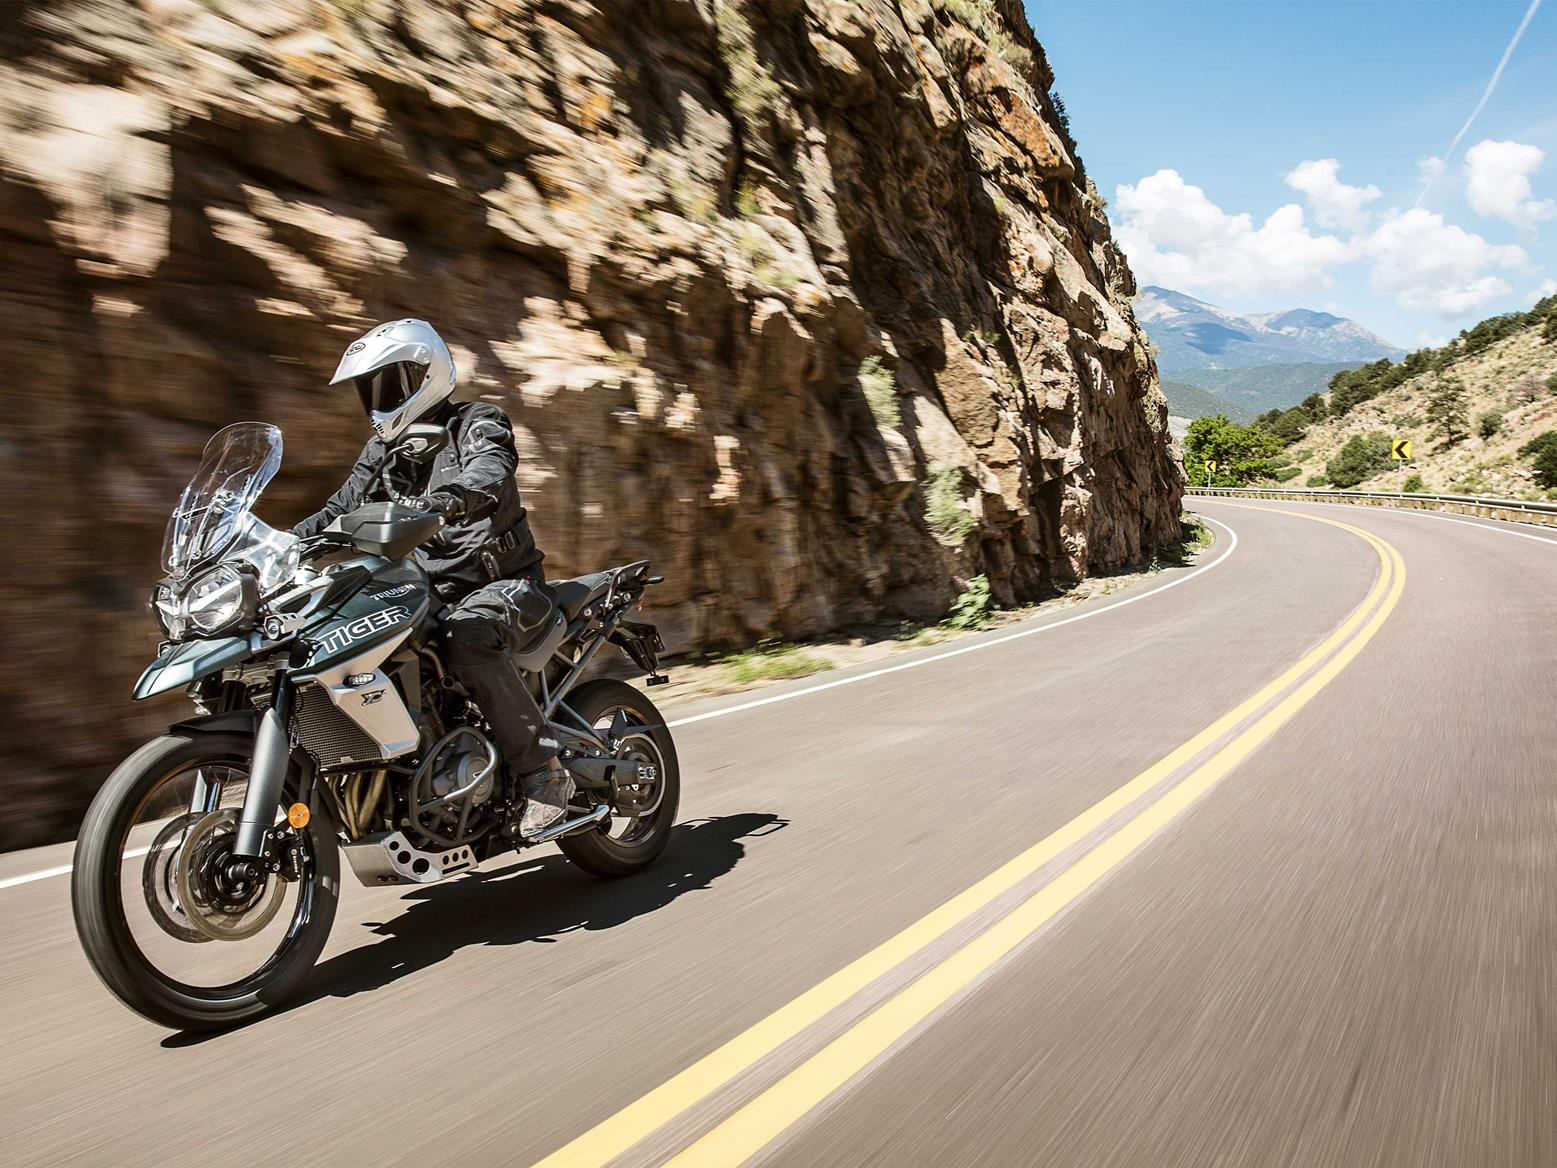 The Triumph Tiger 800 XCA can do it all